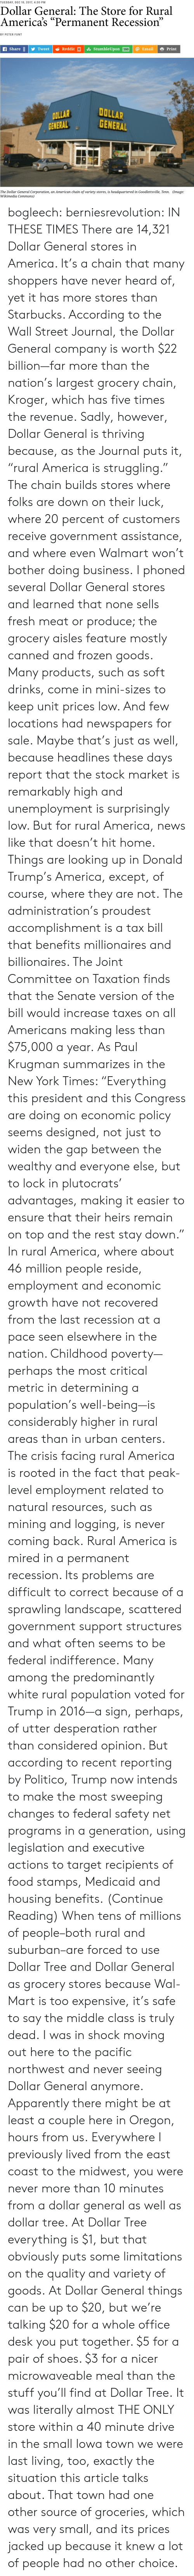 """recession: TUESDAY, DEC 19, 2017, 4:30 PM  Dollar General: The Store for Rural  America's """"Permanent Recession""""  BY PETER FUNT  Share У Tweet Reddit Ju StumbleUpon  @ Email  Print  OLLAR  GENERAL  DOLLAR  GENERAL  The Dollar General Corporation, an American chain of variety stores, is headquartered in Goodlettsville, Tenn.  (Image: bogleech:  berniesrevolution:  IN THESE TIMES There are 14,321 Dollar General stores in America. It's a chain that many shoppers have never heard of, yet it has more stores than Starbucks. According to the Wall Street Journal, the Dollar General company is worth $22 billion—far more than the nation's largest grocery chain, Kroger, which has five times the revenue. Sadly, however, Dollar General is thriving because, as the Journal puts it, """"rural America is struggling."""" The chain builds stores where folks are down on their luck, where 20 percent of customers receive government assistance, and where even Walmart won't bother doing business. I phoned several Dollar General stores and learned that none sells fresh meat or produce; the grocery aisles feature mostly canned and frozen goods. Many products, such as soft drinks, come in mini-sizes to keep unit prices low. And few locations had newspapers for sale. Maybe that's just as well, because headlines these days report that the stock market is remarkably high and unemployment is surprisingly low. But for rural America, news like that doesn't hit home. Things are looking up in Donald Trump's America, except, of course, where they are not. The administration's proudest accomplishment is a tax bill that benefits millionaires and billionaires. The Joint Committee on Taxation finds that the Senate version of the bill would increase taxes on all Americans making less than $75,000 a year. As Paul Krugman summarizes in the New York Times: """"Everything this president and this Congress are doing on economic policy seems designed, not just to widen the gap between the wealthy and everyone else, but to """